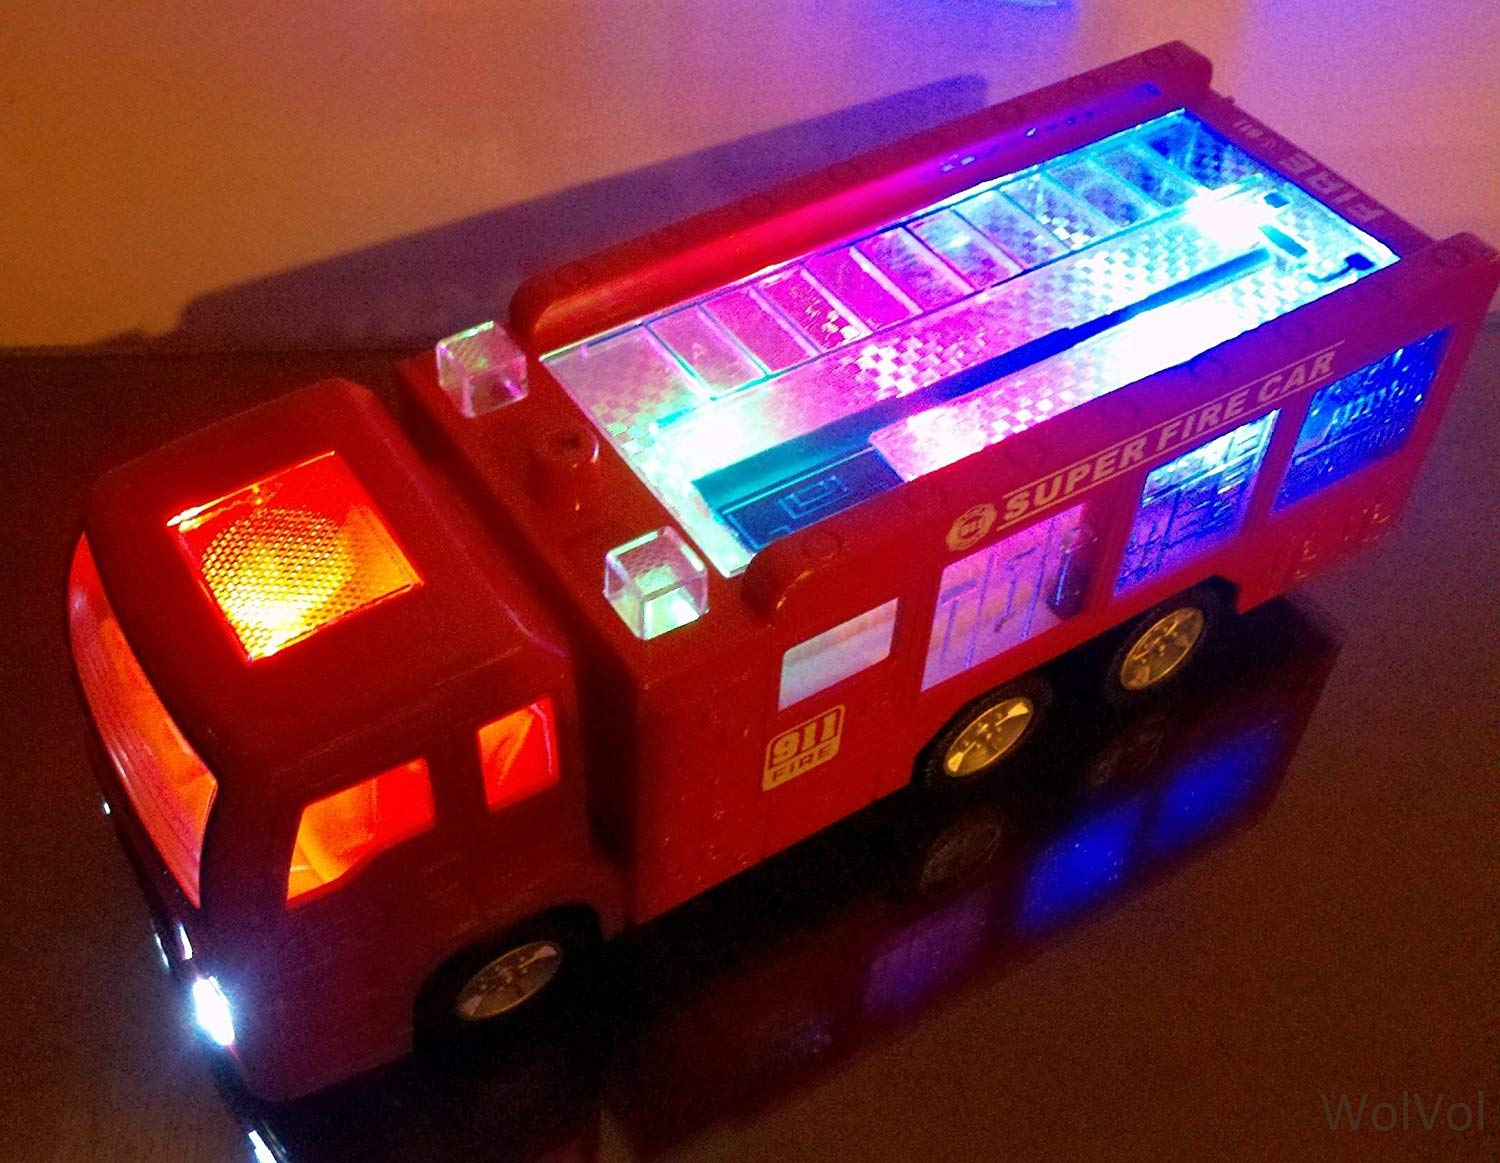 WolVol Electric Fire Truck Toy with Stunning 3D Lights and Sirens, goes Around and Changes Directions on Contact - Great Gift Toys for Kids by WolVol